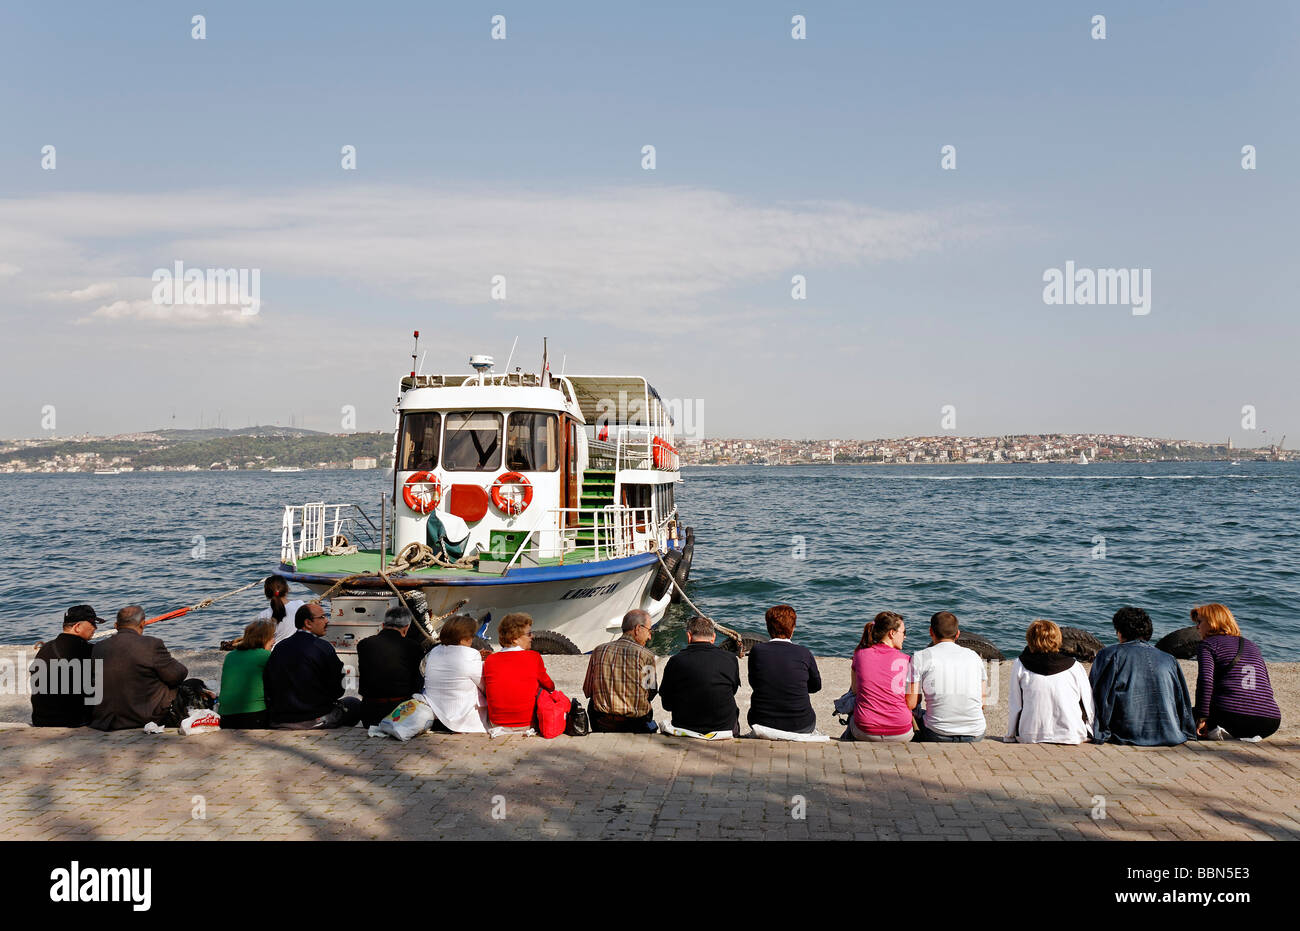 People sit in a row on the quay, waiting for the ferry, Bosphorus panorama, Kabatas, Istanbul, Turkey Stock Photo